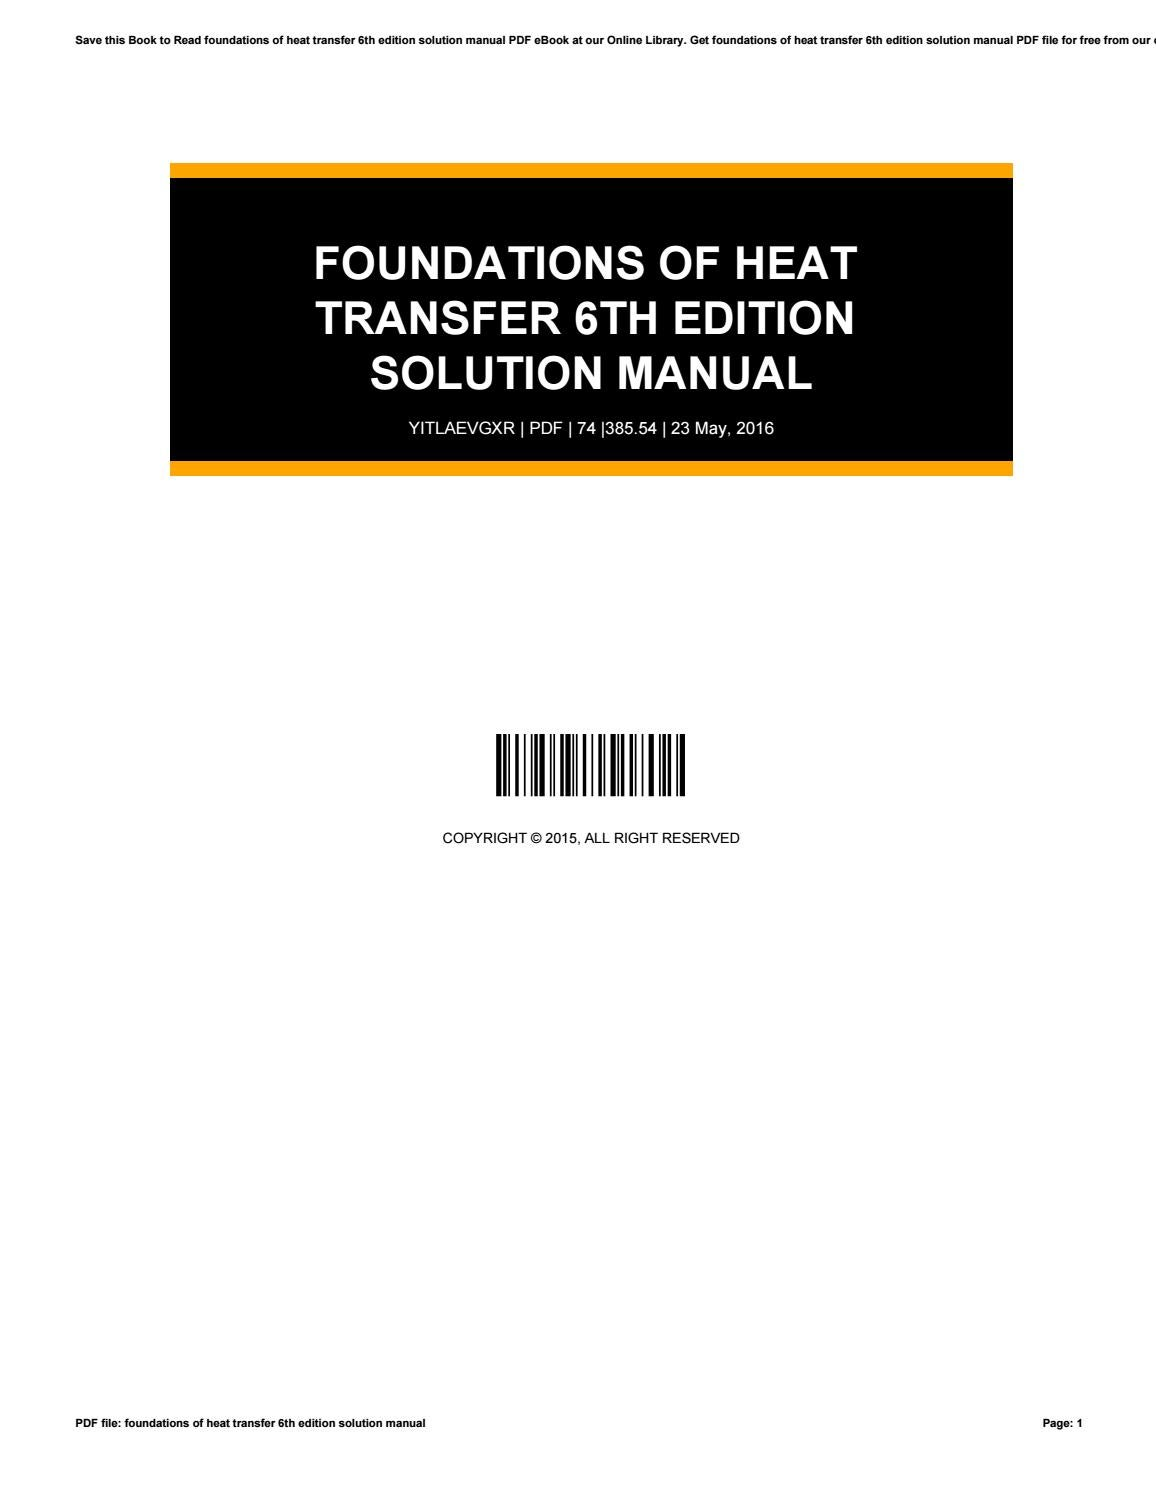 Foundations of heat transfer 6th edition solution manual by  RalphSorensen1392 - issuu